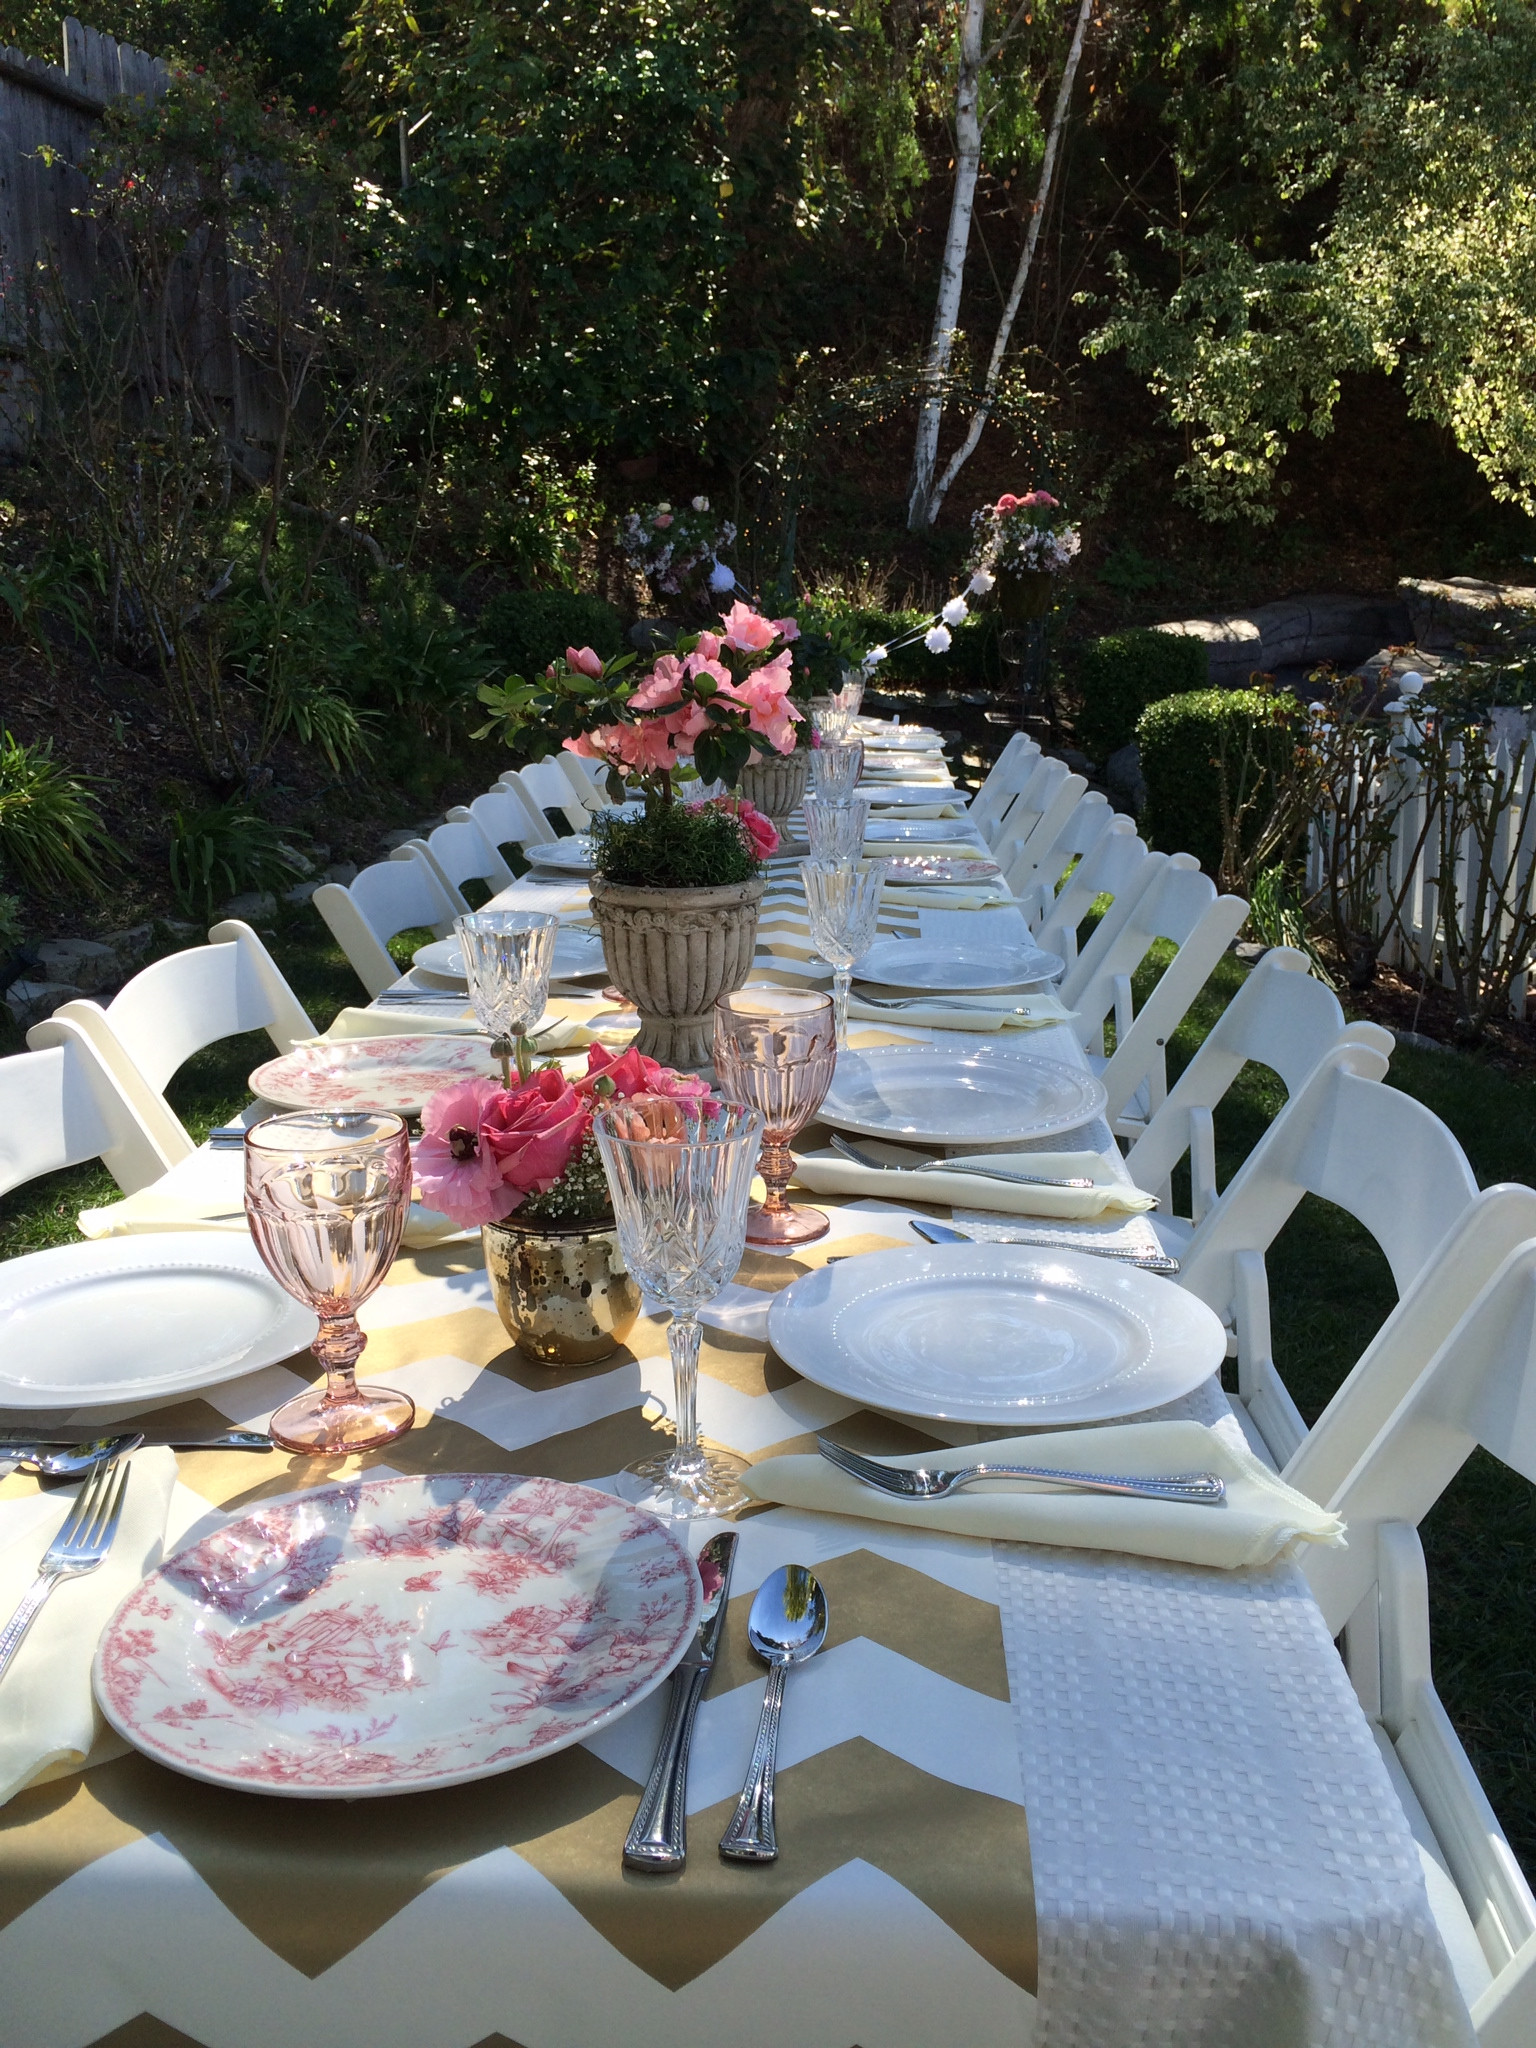 Tea Party Themes Ideas  Tea Anyone Great Tea Party Ideas for All Occasions